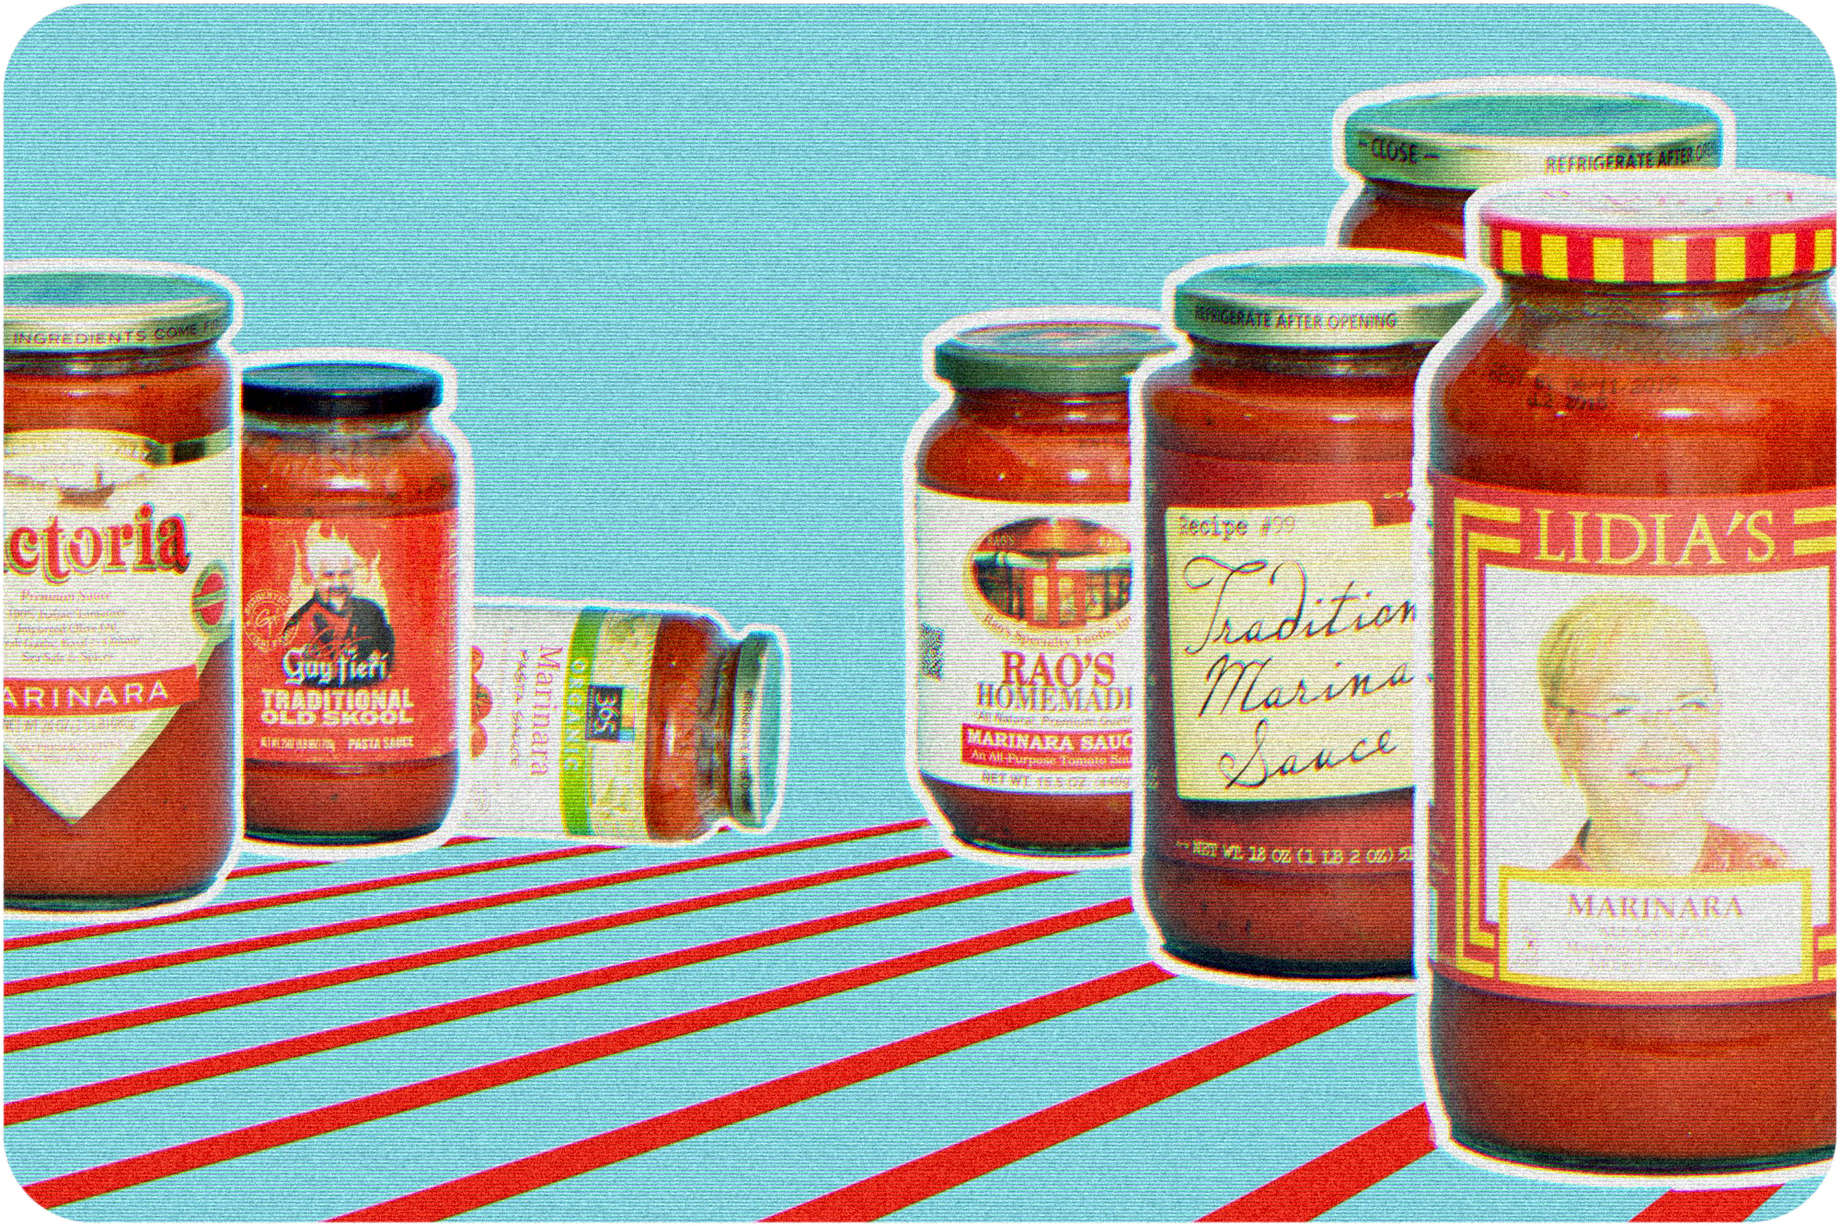 Cucina Antica Tomato Basil Uk Best Store Bought Pasta Sauces Jarred Sauces Ranked